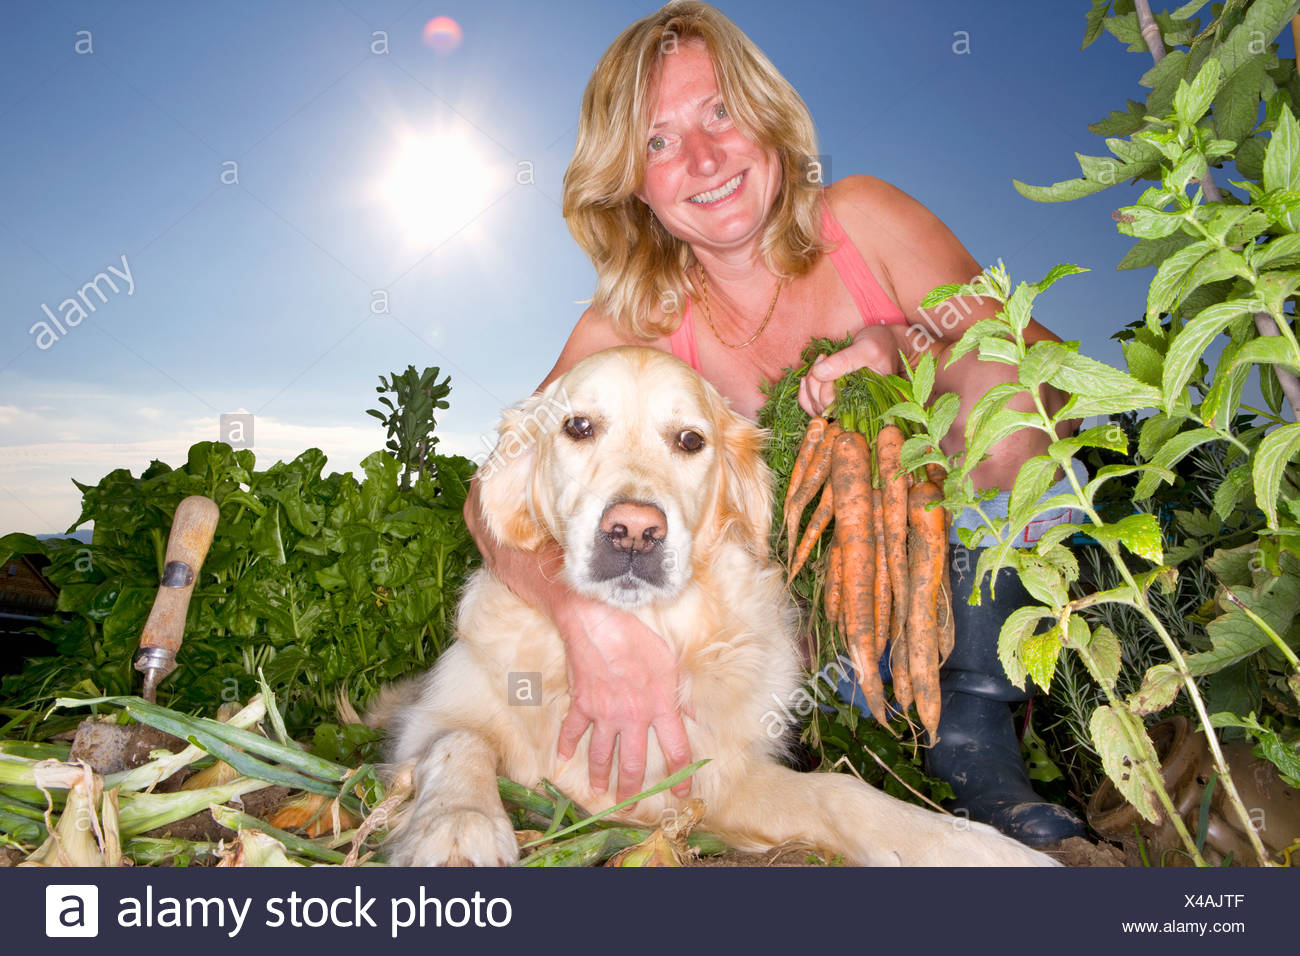 Portrait of woman and dog in vegetable garden Stock Photo